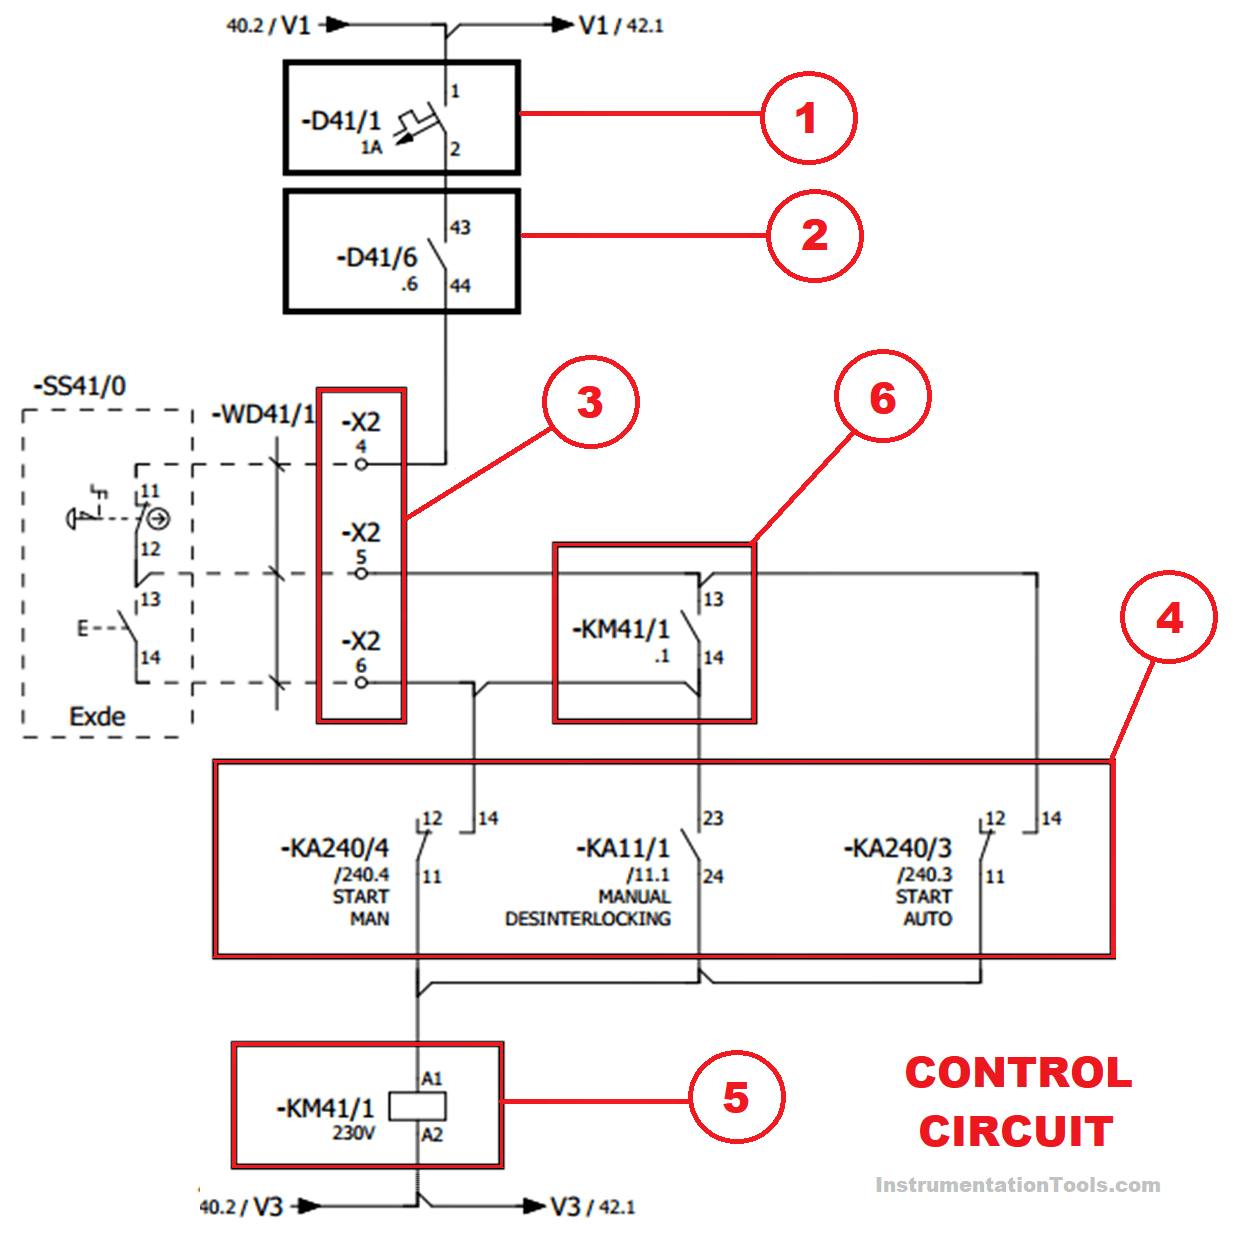 Control circuit for the motor using PLC